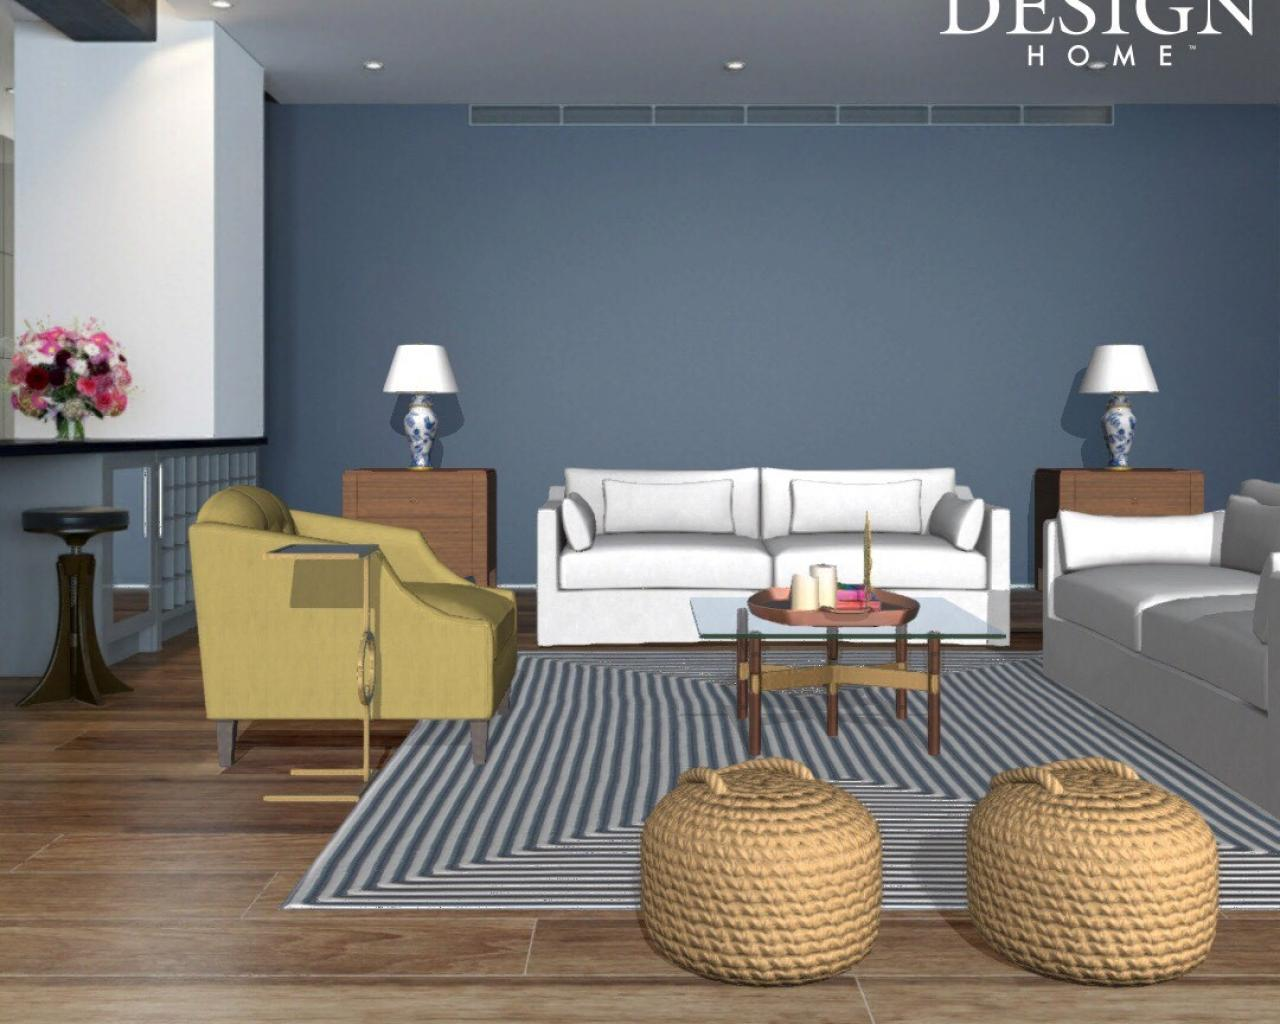 Be an interior designer with design home app hgtv 39 s for House and home decorating